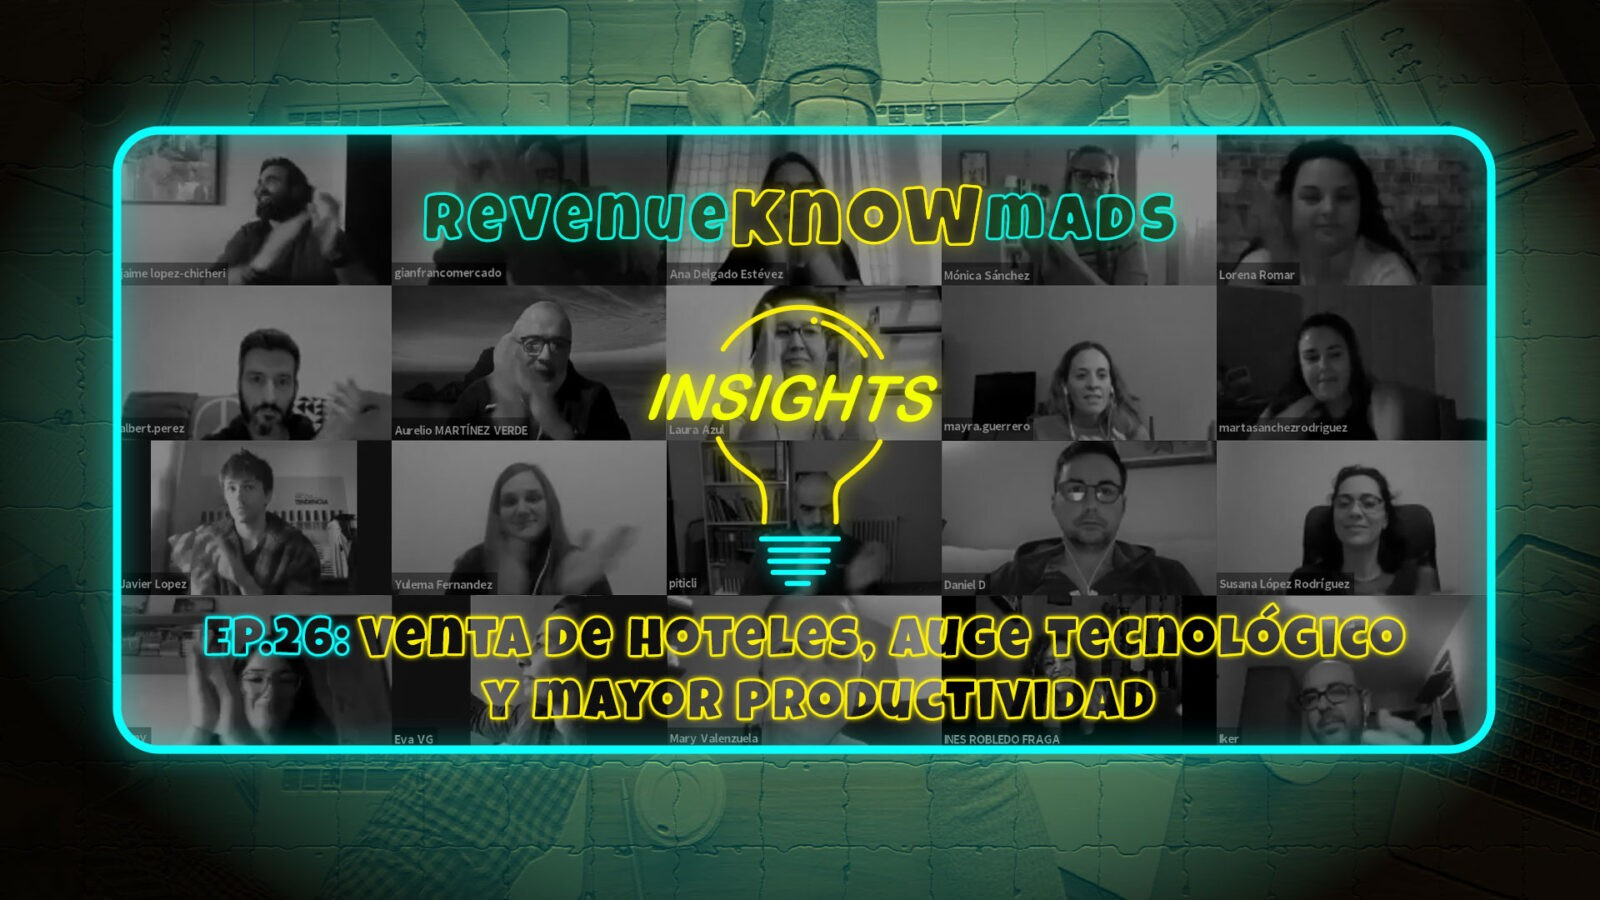 Revenueknowmads Insights 25